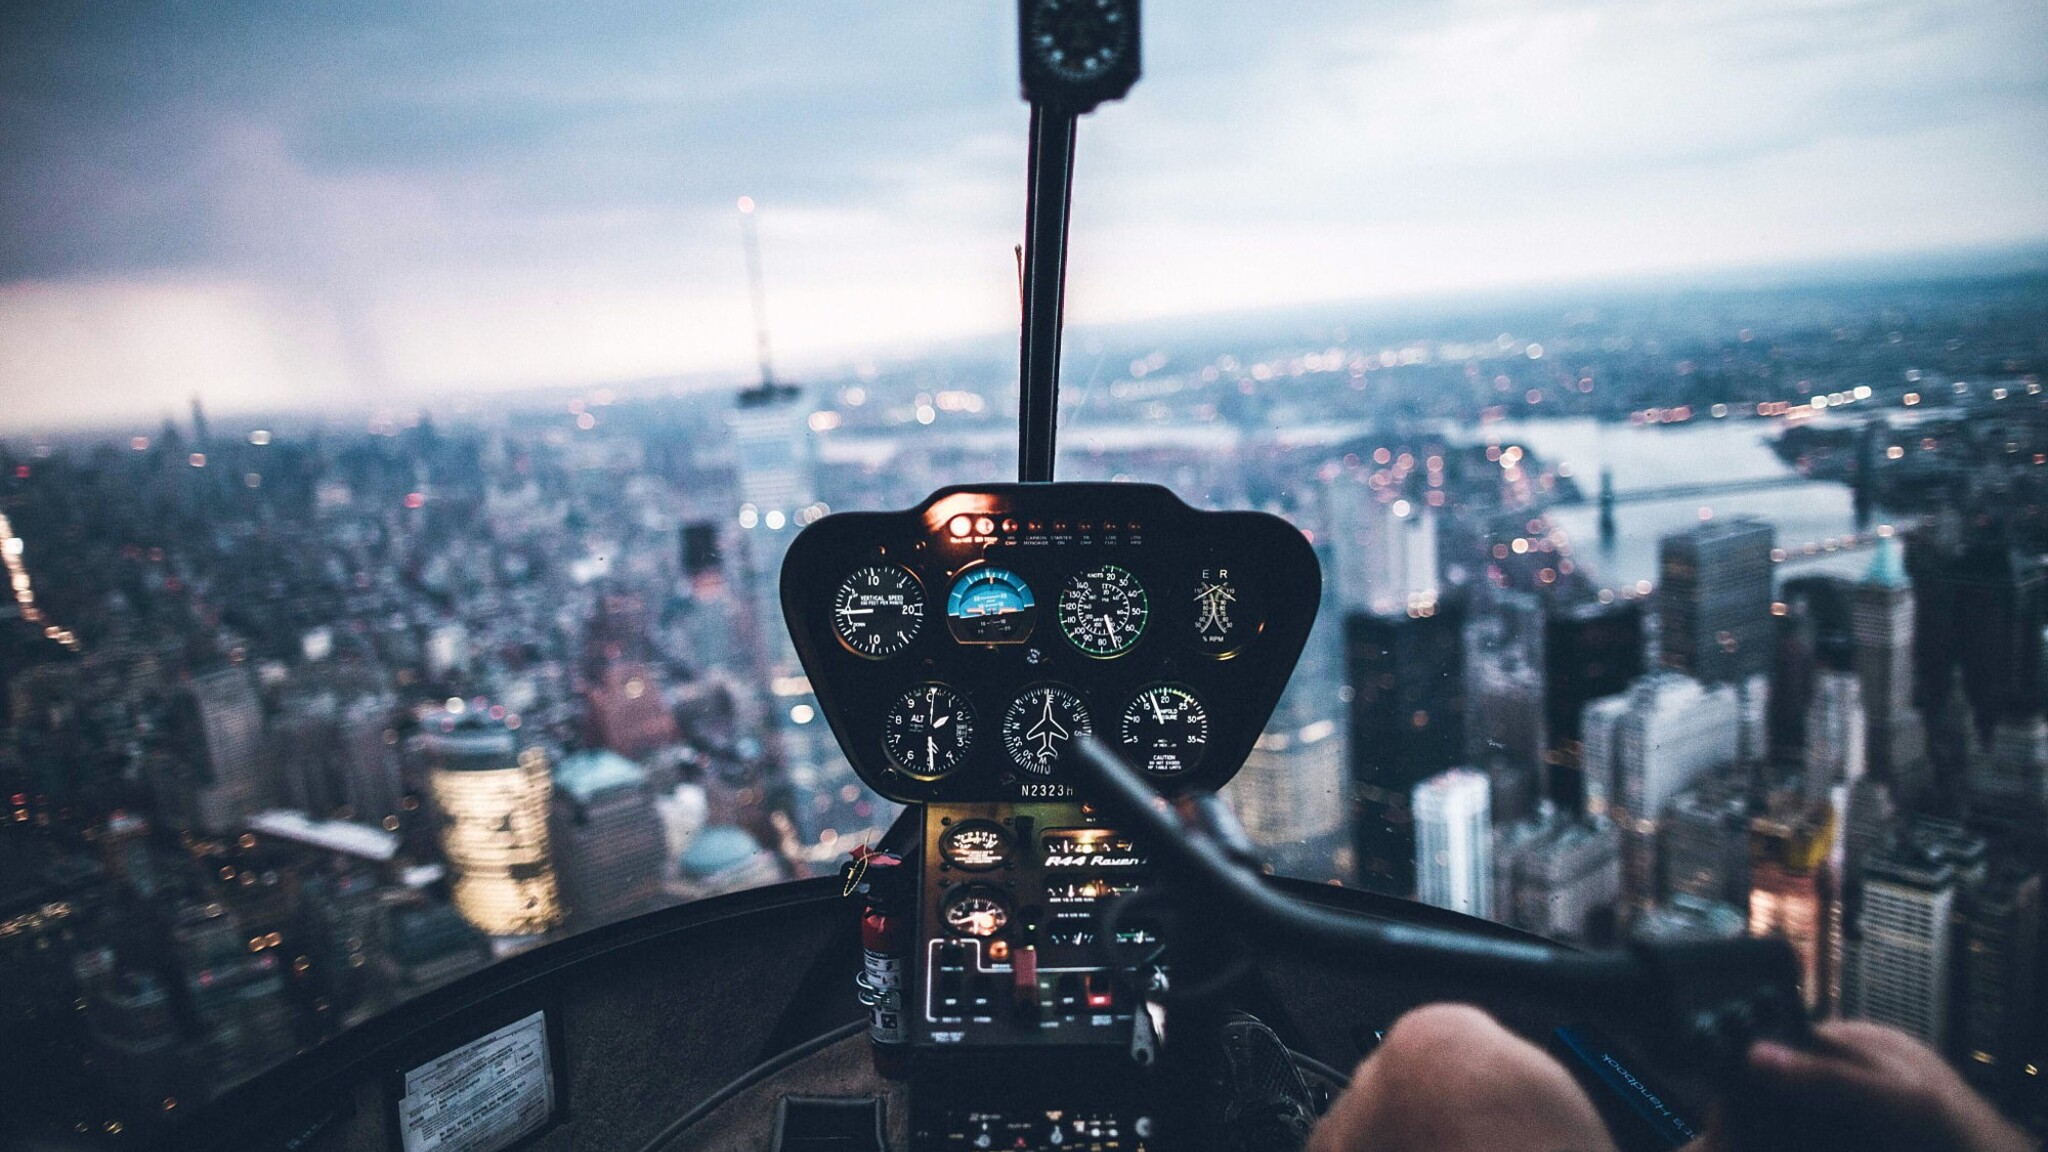 2048x1152 helicopter inside view 2048x1152 resolution hd - 4k cockpit wallpaper ...